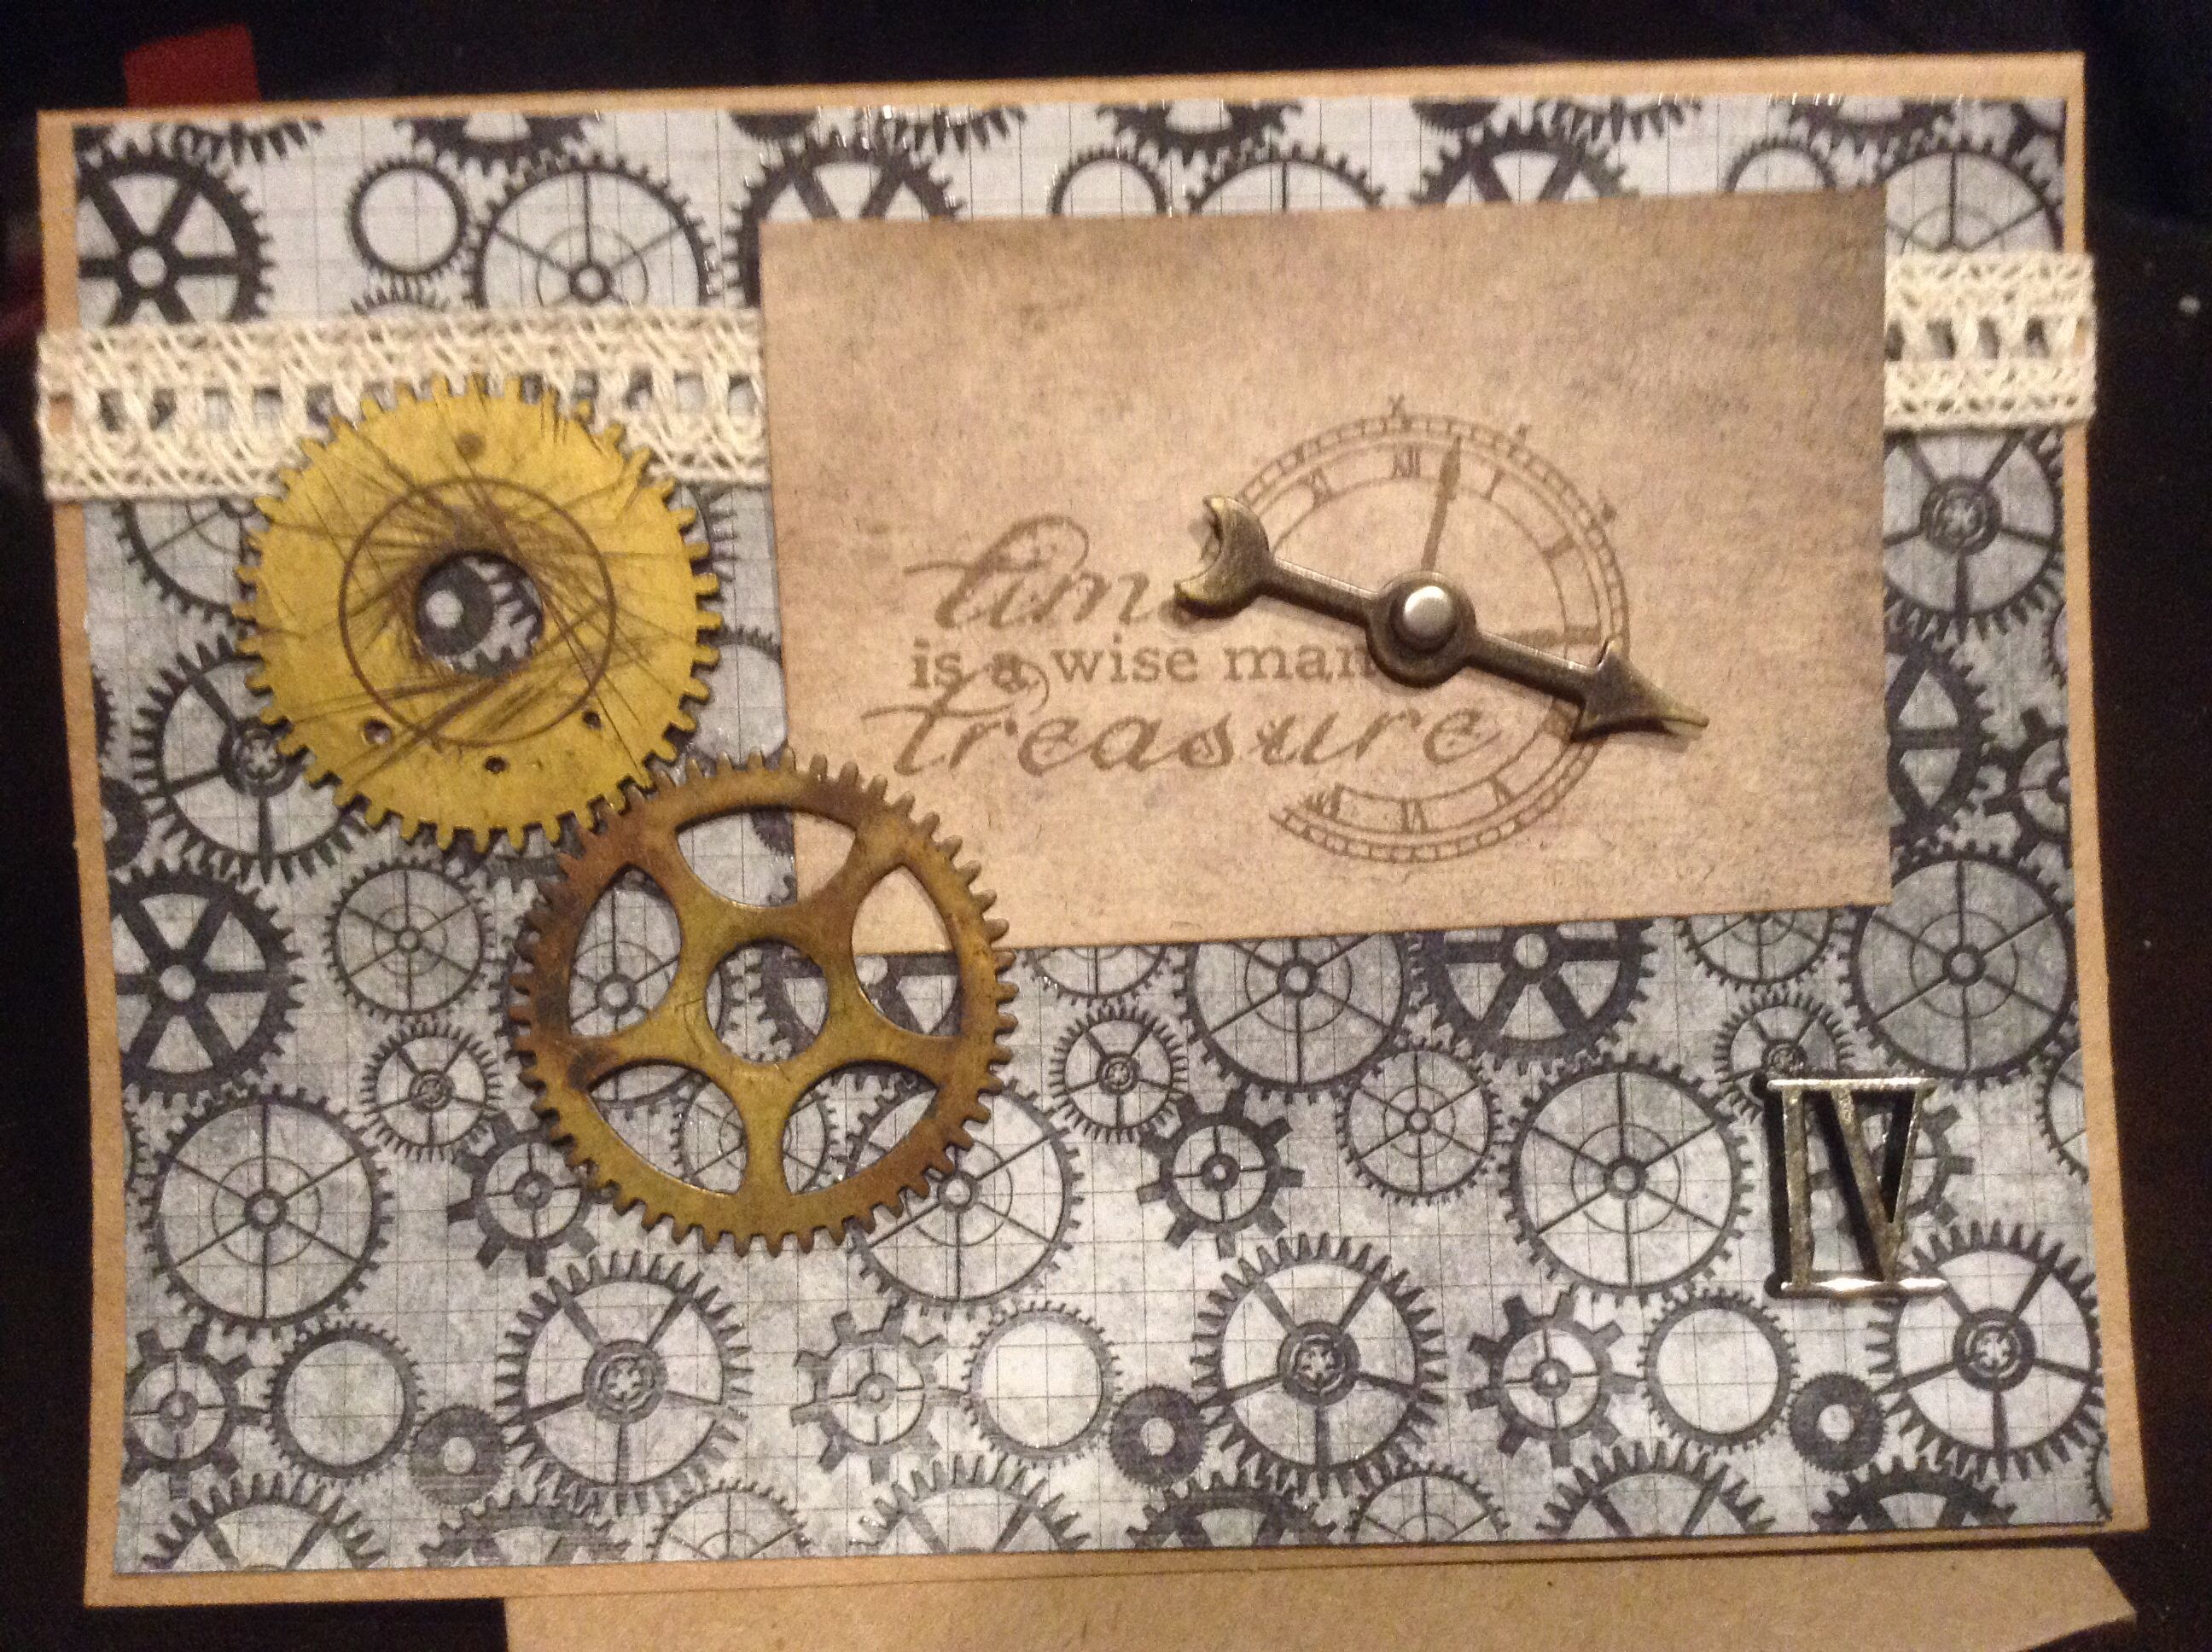 Made this card for an horologist with images